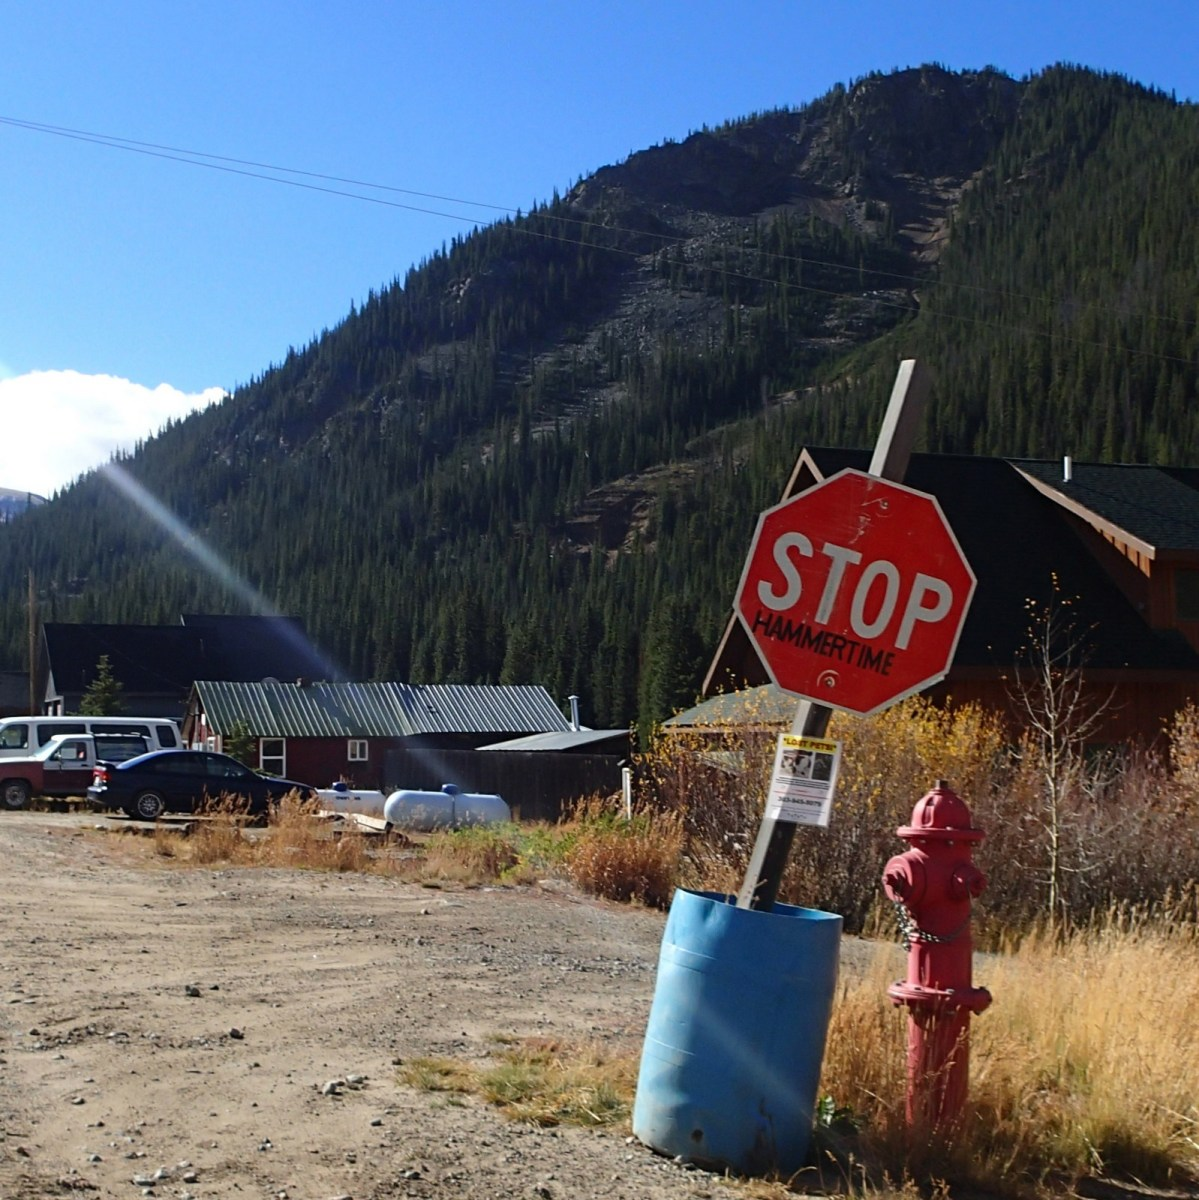 During the Sunday morning session we drove to Montezuma, Colorado to scope some hikes a friend told us about.